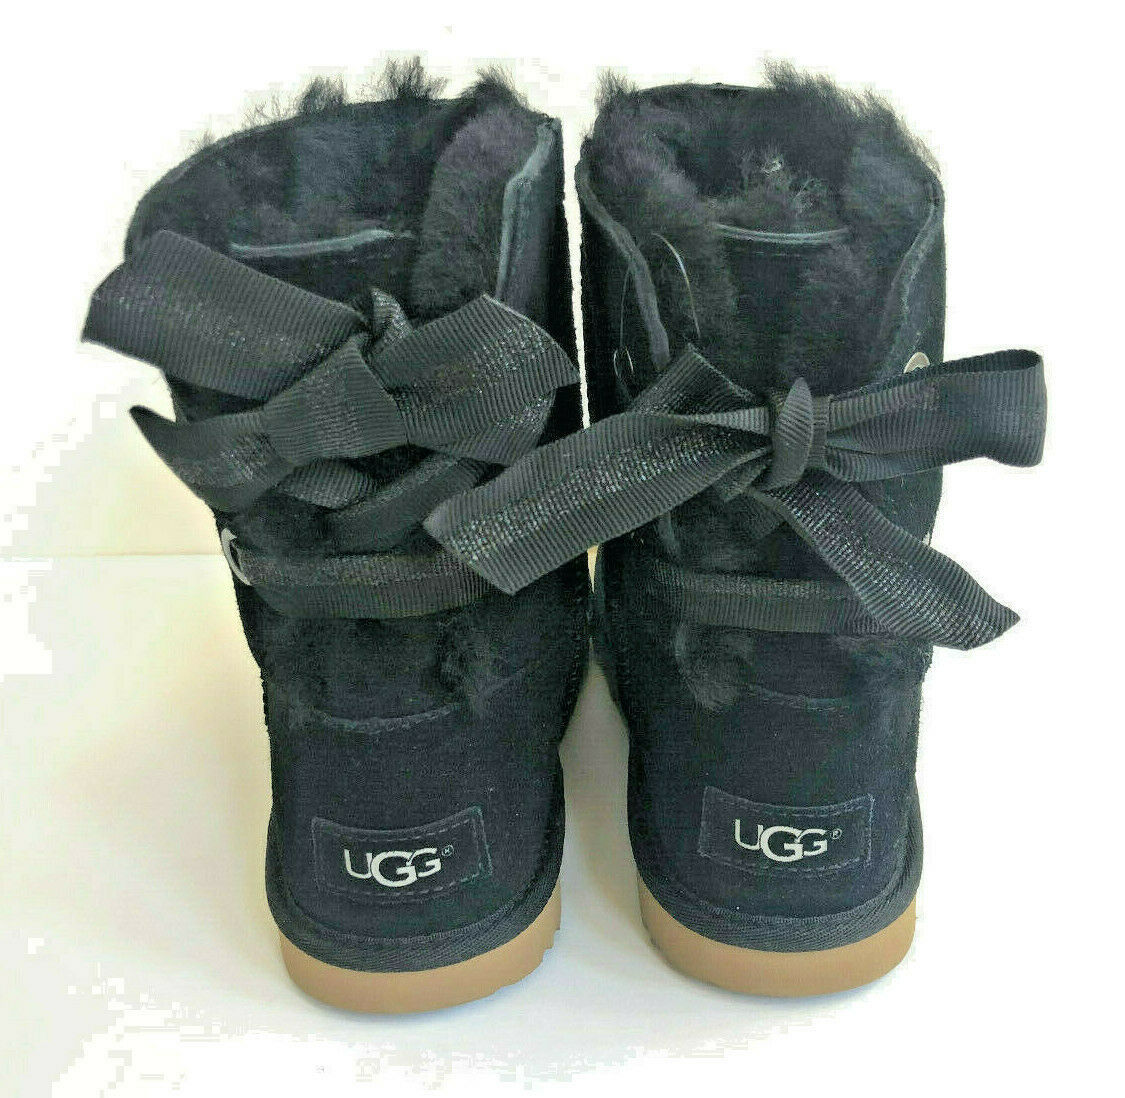 Primary image for UGG CUSTOMIZABLE BAILEY BOW II BLACK KID/YOUTH US 5 -fit Women US 7 /EU 38 /UK 5